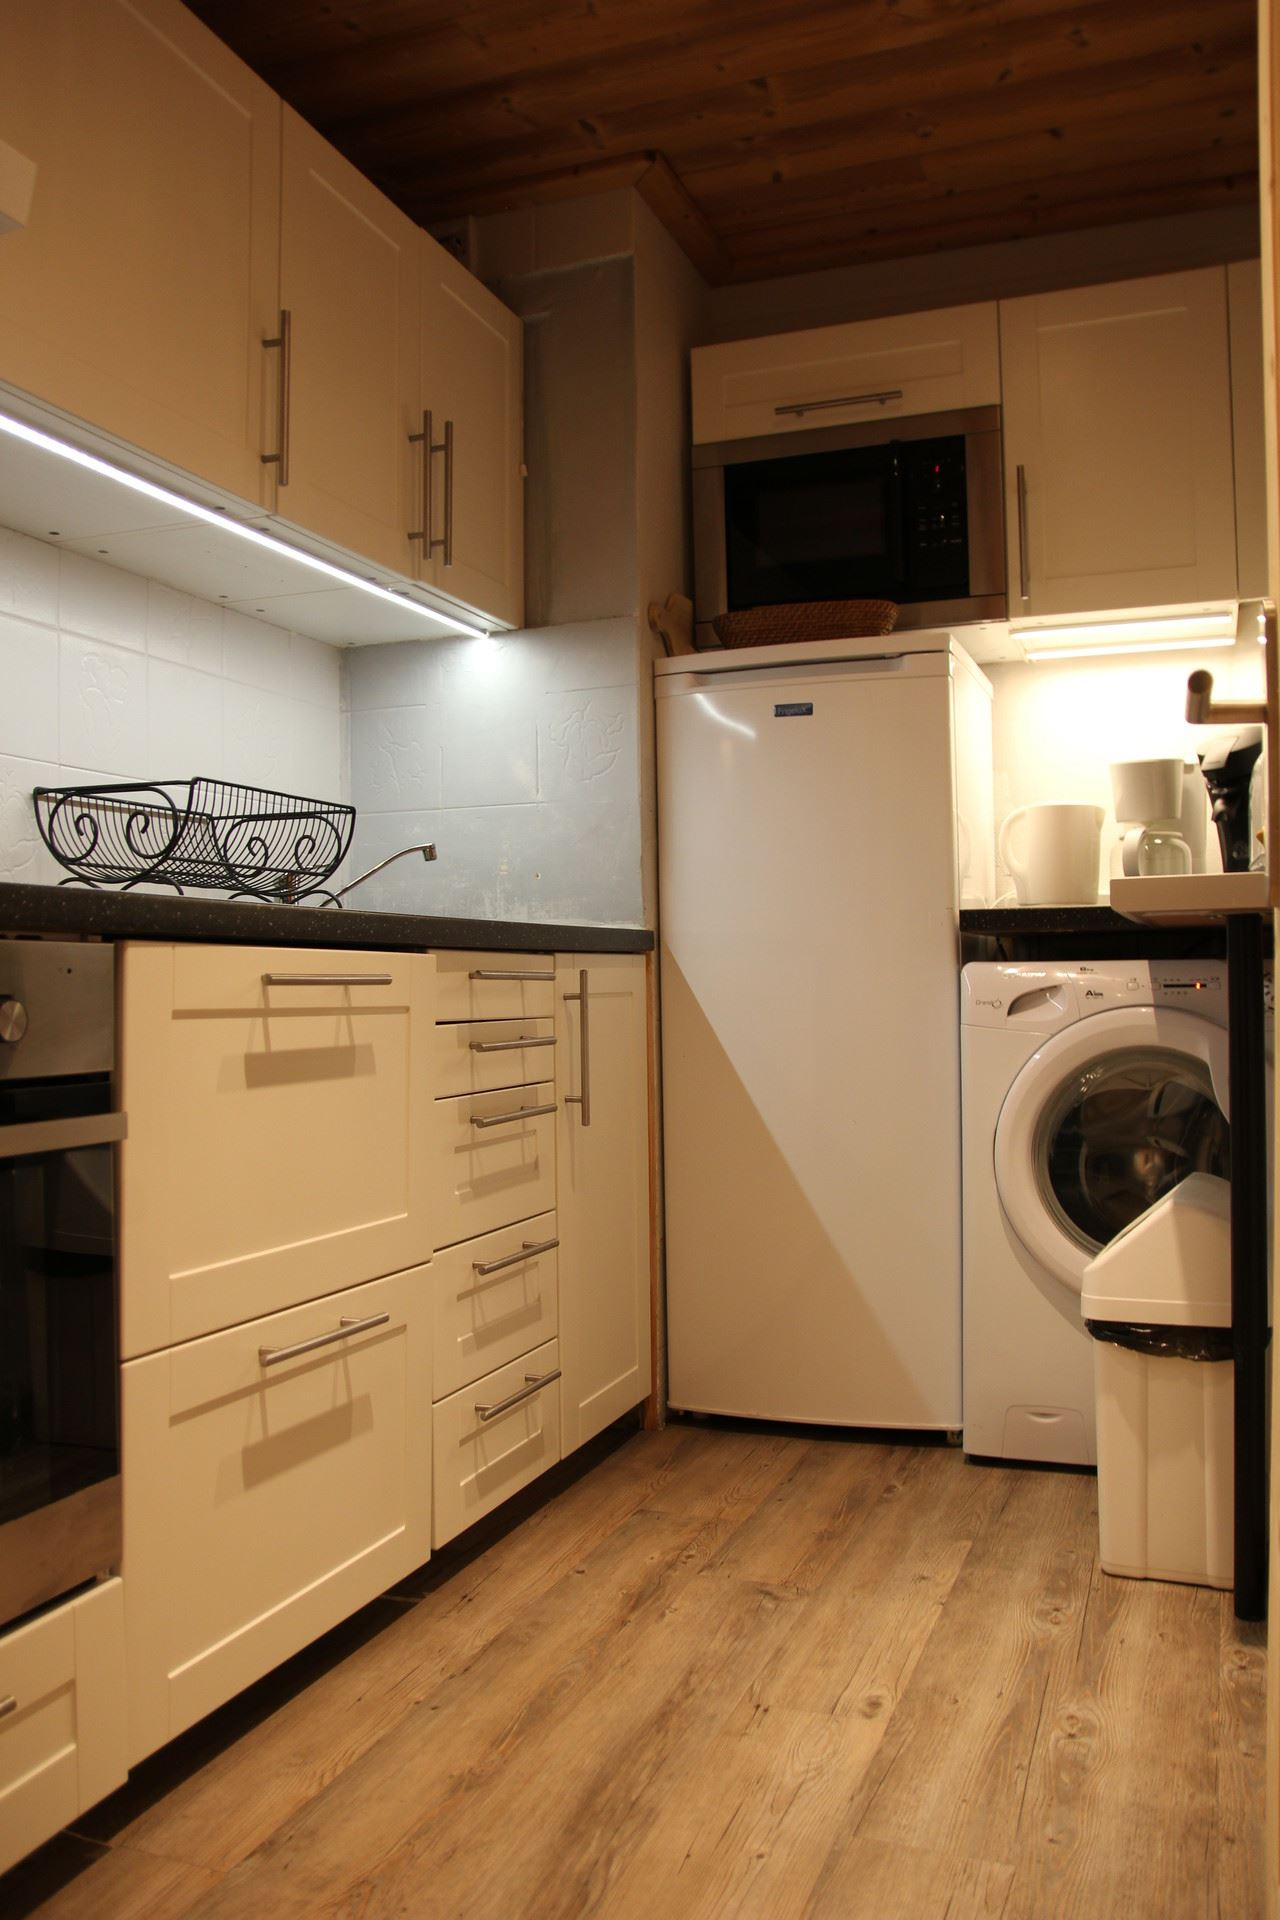 SERAC M9 / APARTMENT 4 ROOMS 8 PEOPLE - 3 SILVER SNOWFLAKES - CI